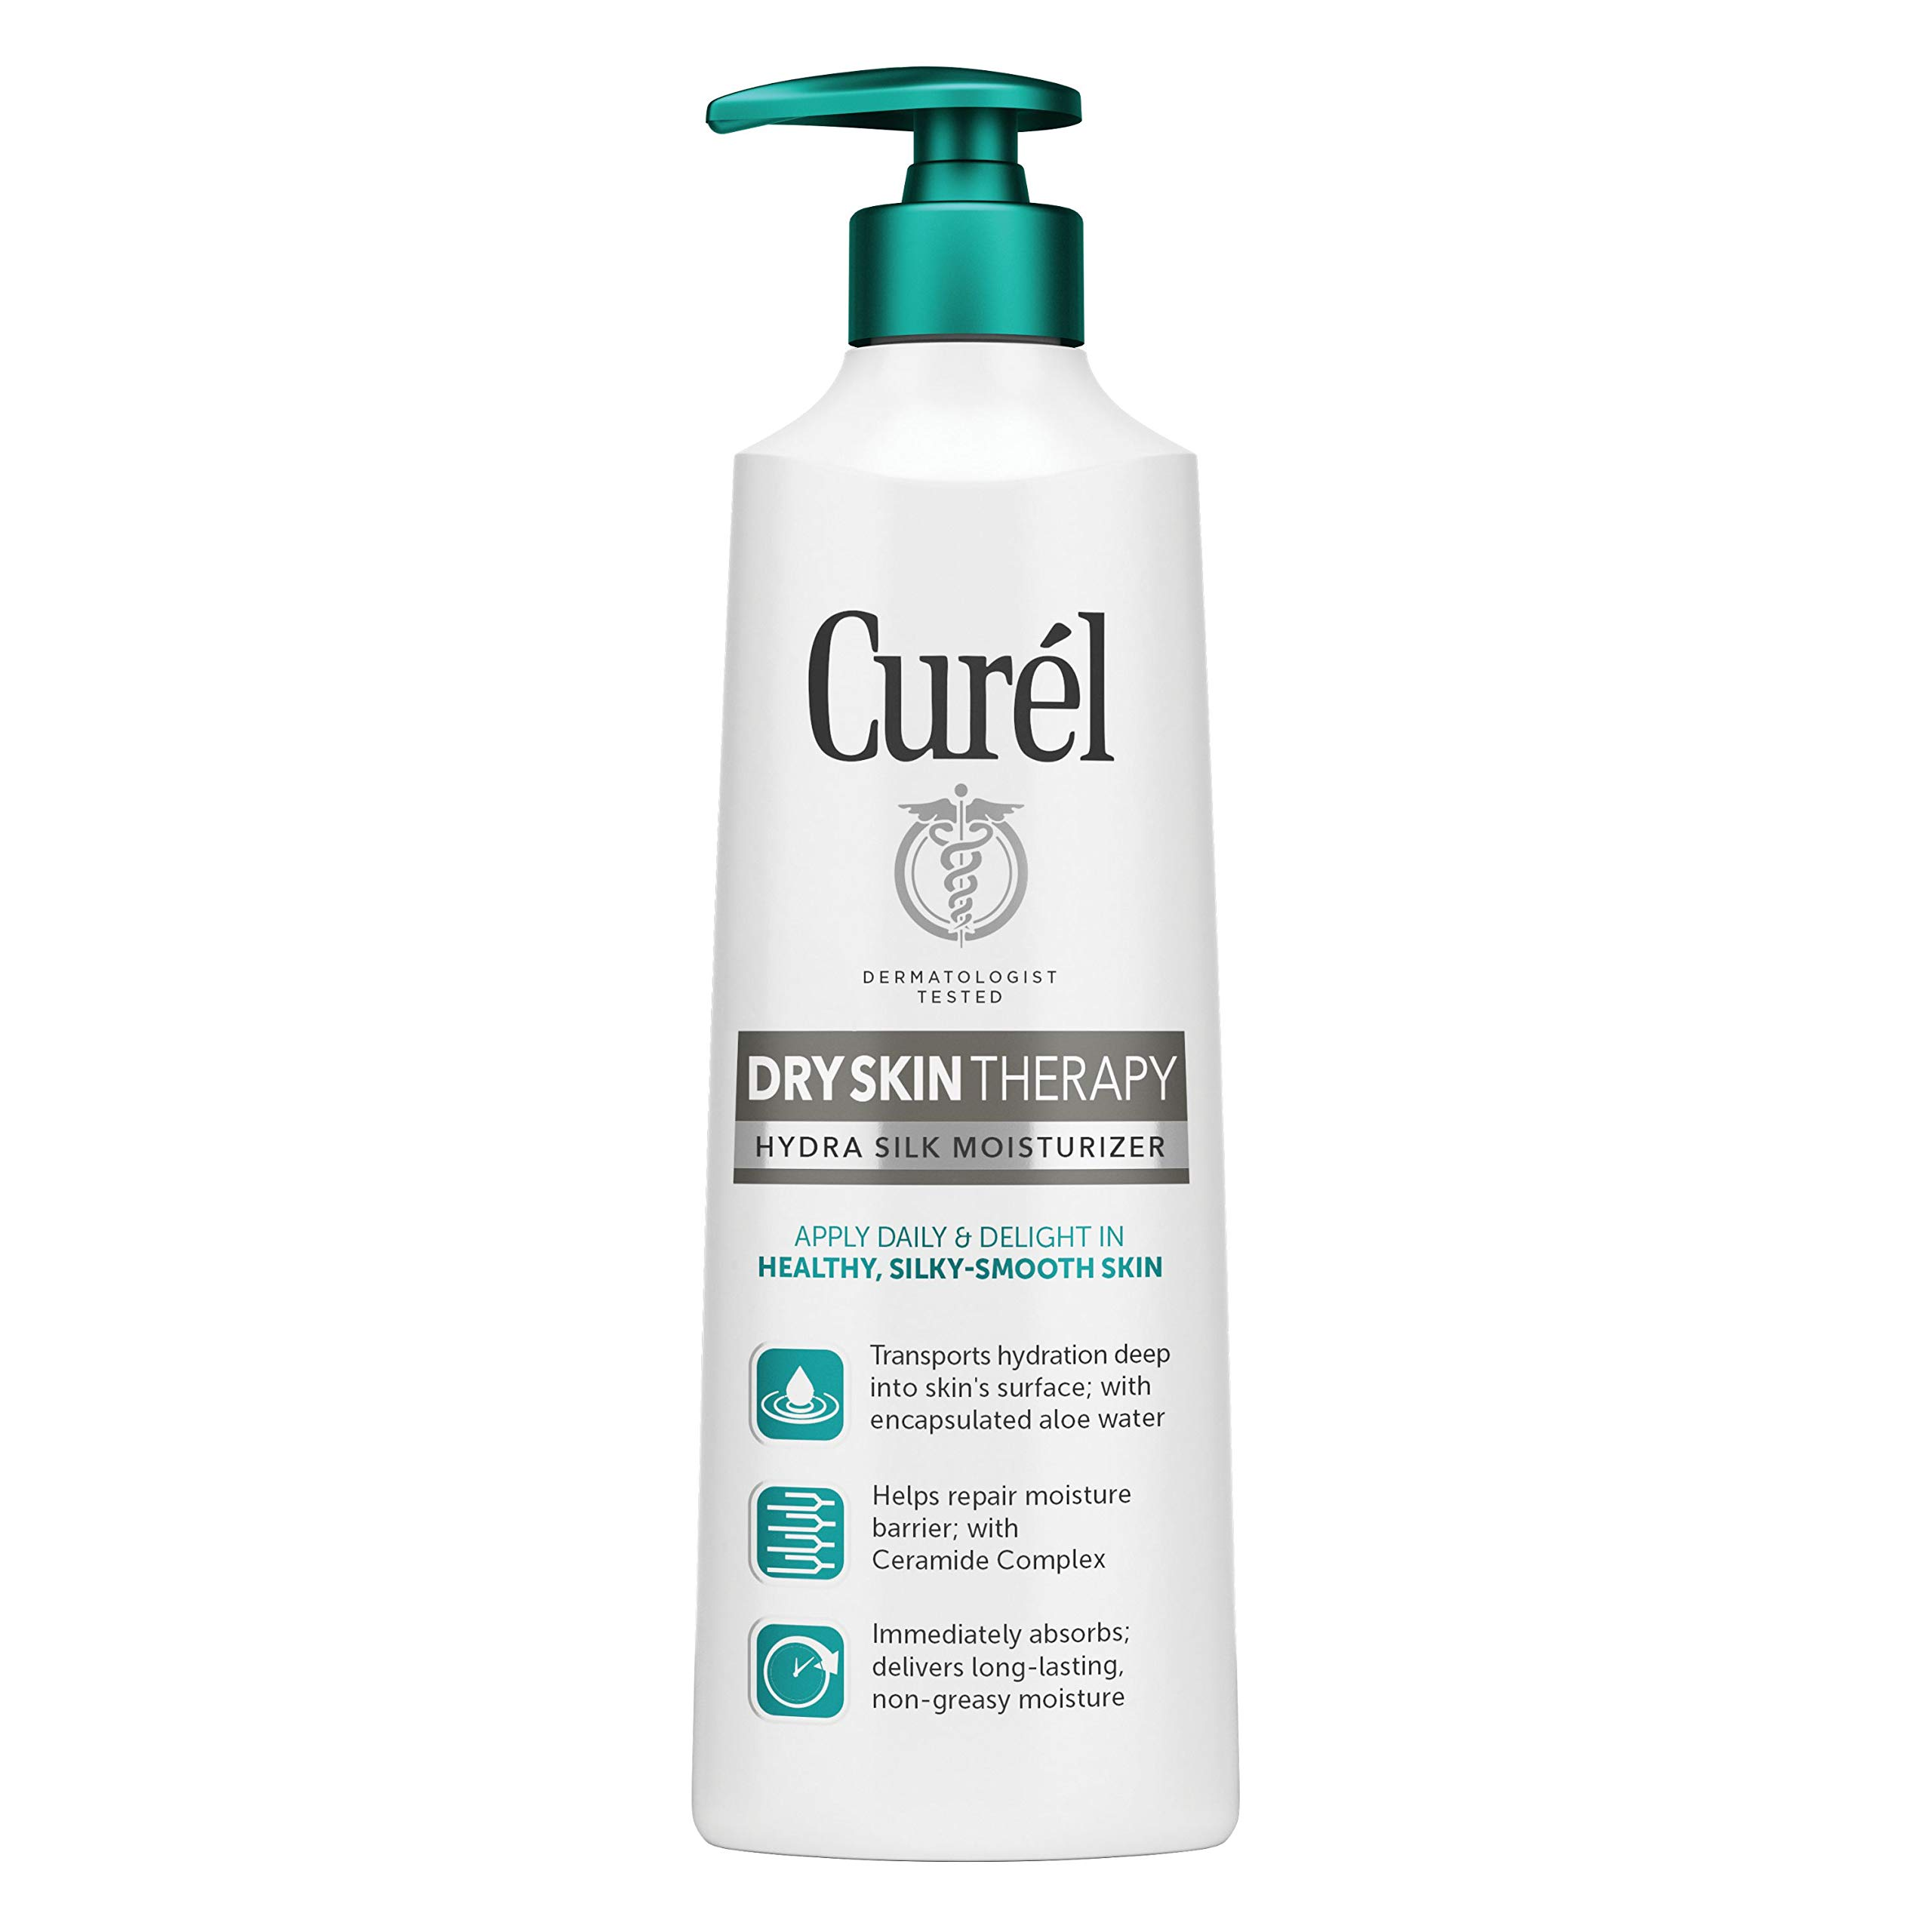 Curél Hydra Therapy, Itch Defense Moisturizer, Wet Skin Lotion, 12 Ounce, with Advanced Ceramide Complex, Vitamin E, and Oatmeal Extract, Helps to Repair Moisture Barrier